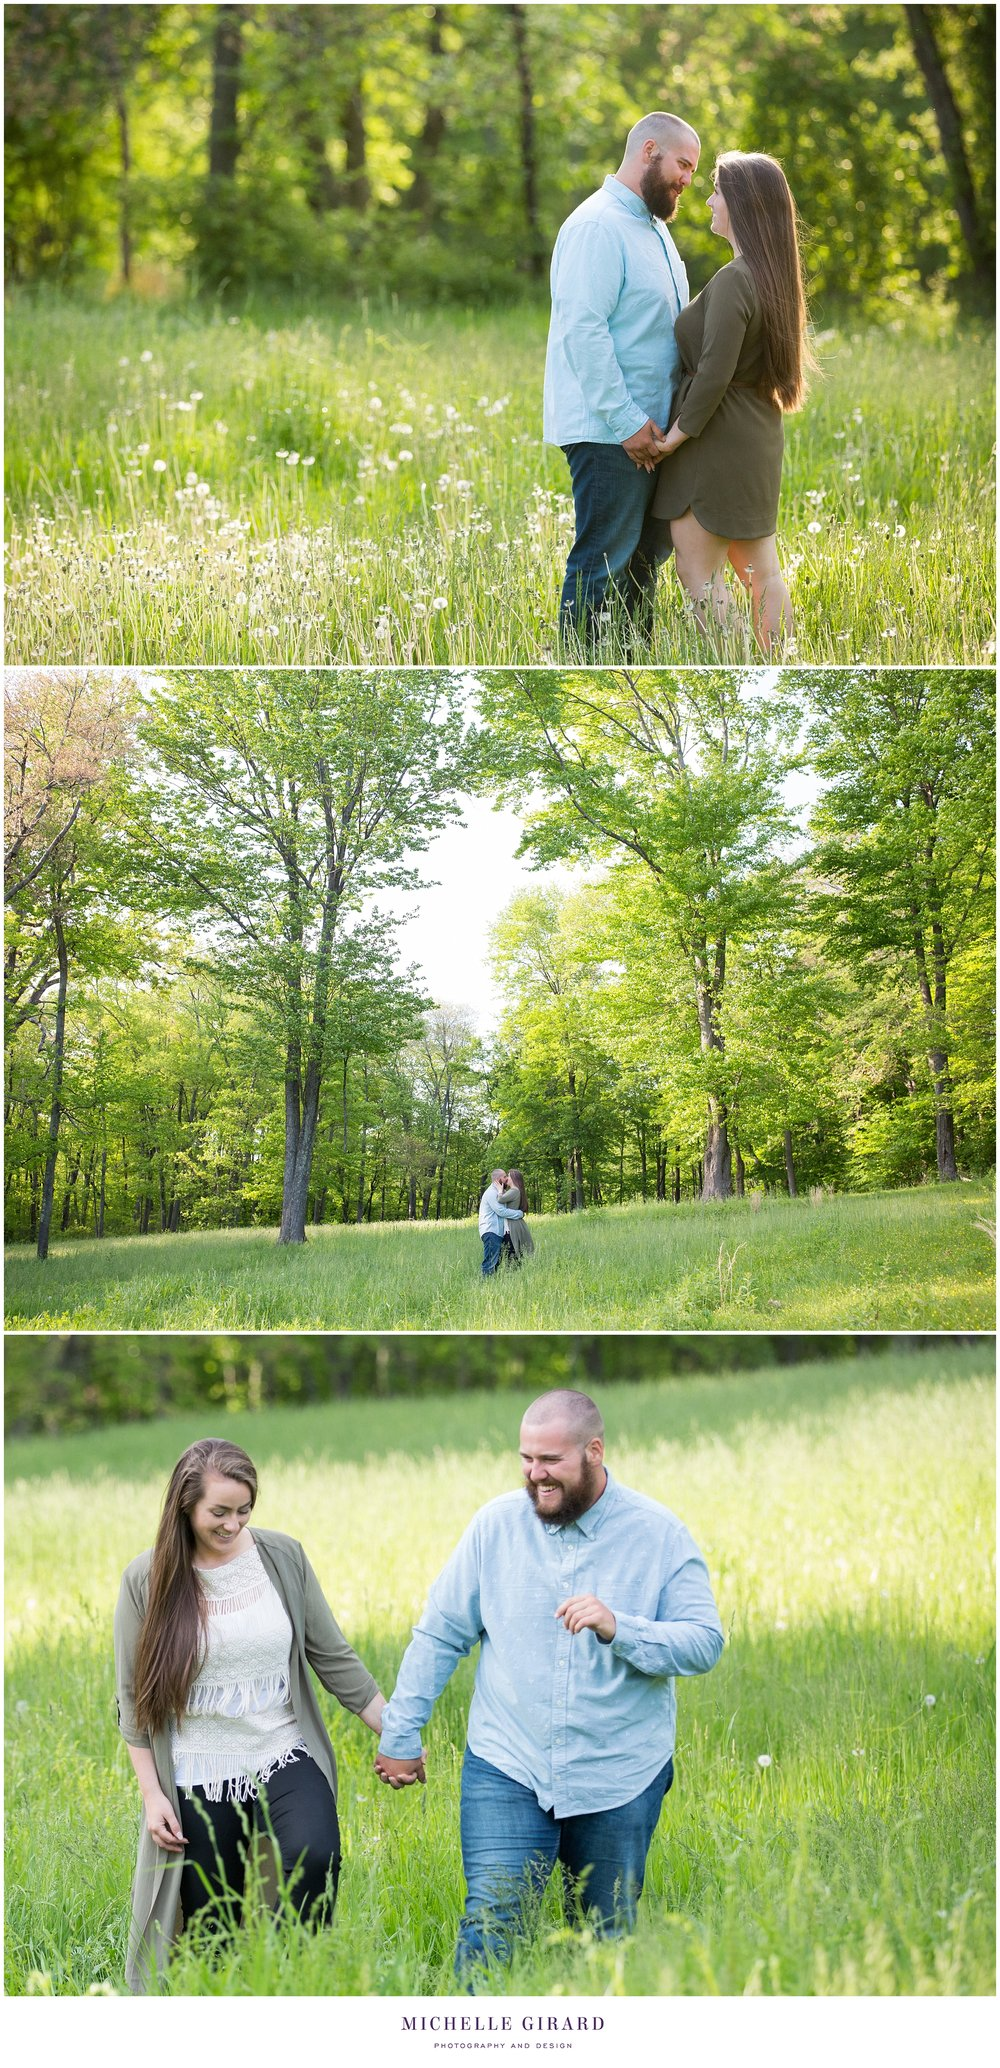 BackyardCountryEngagementSession_MichelleGirardPhotography05.jpg